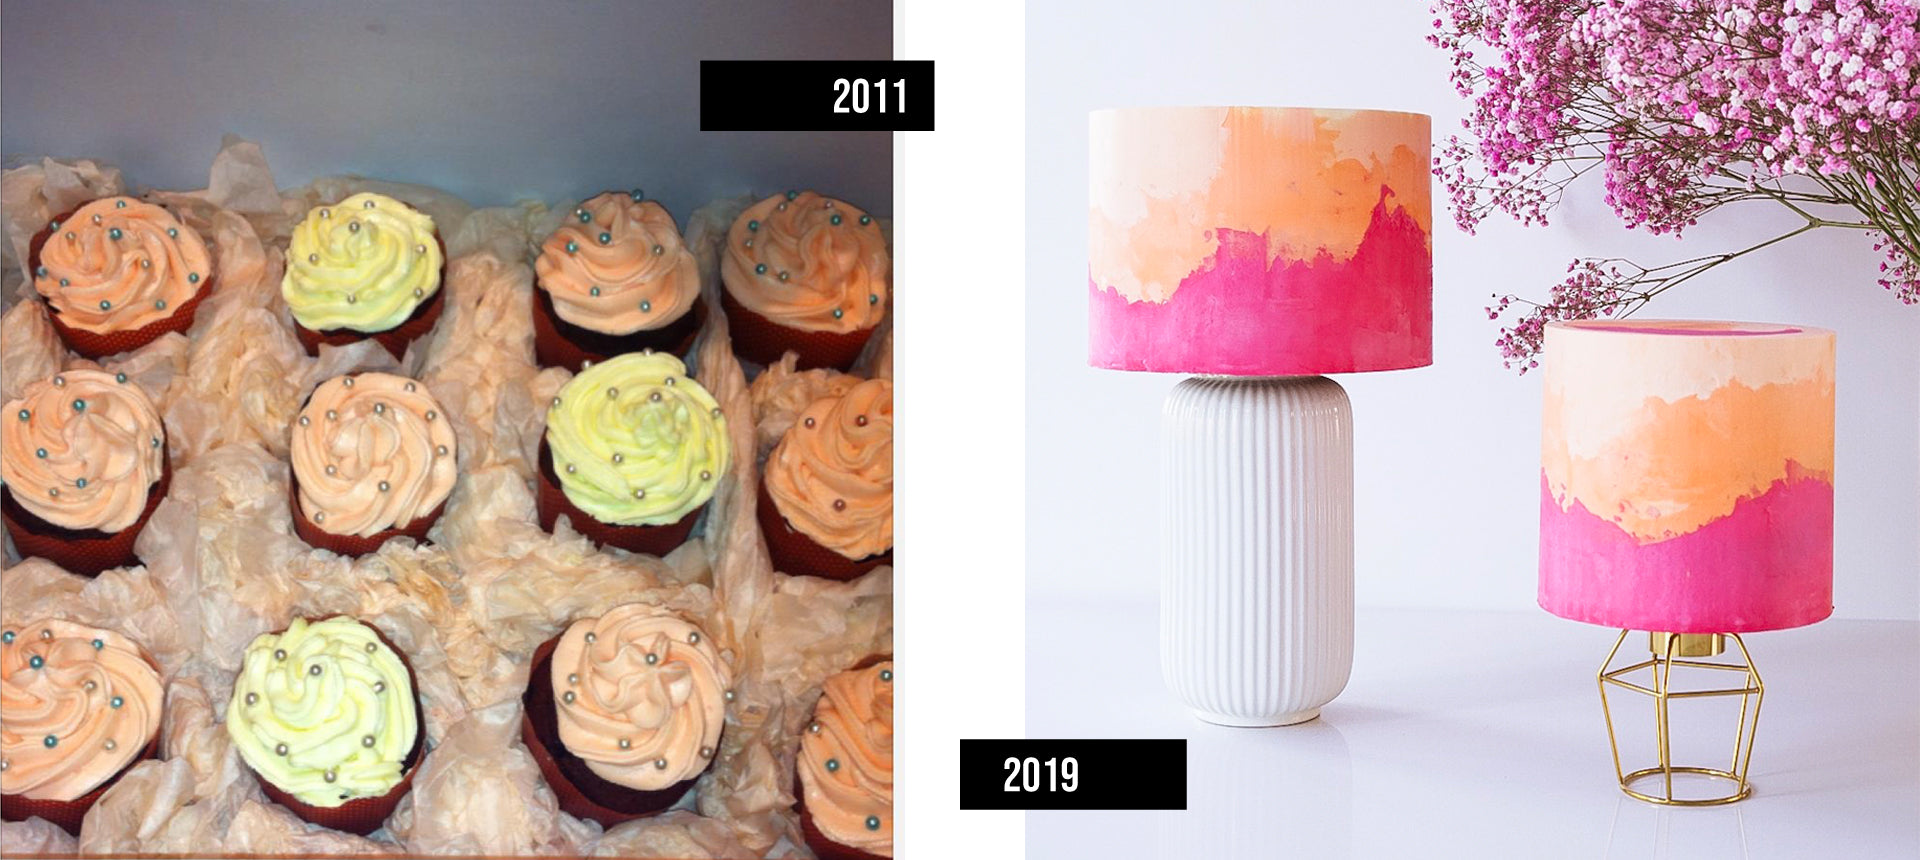 Red Velvet cupcakes in 2011 and DTC modern cake lamps in 2019